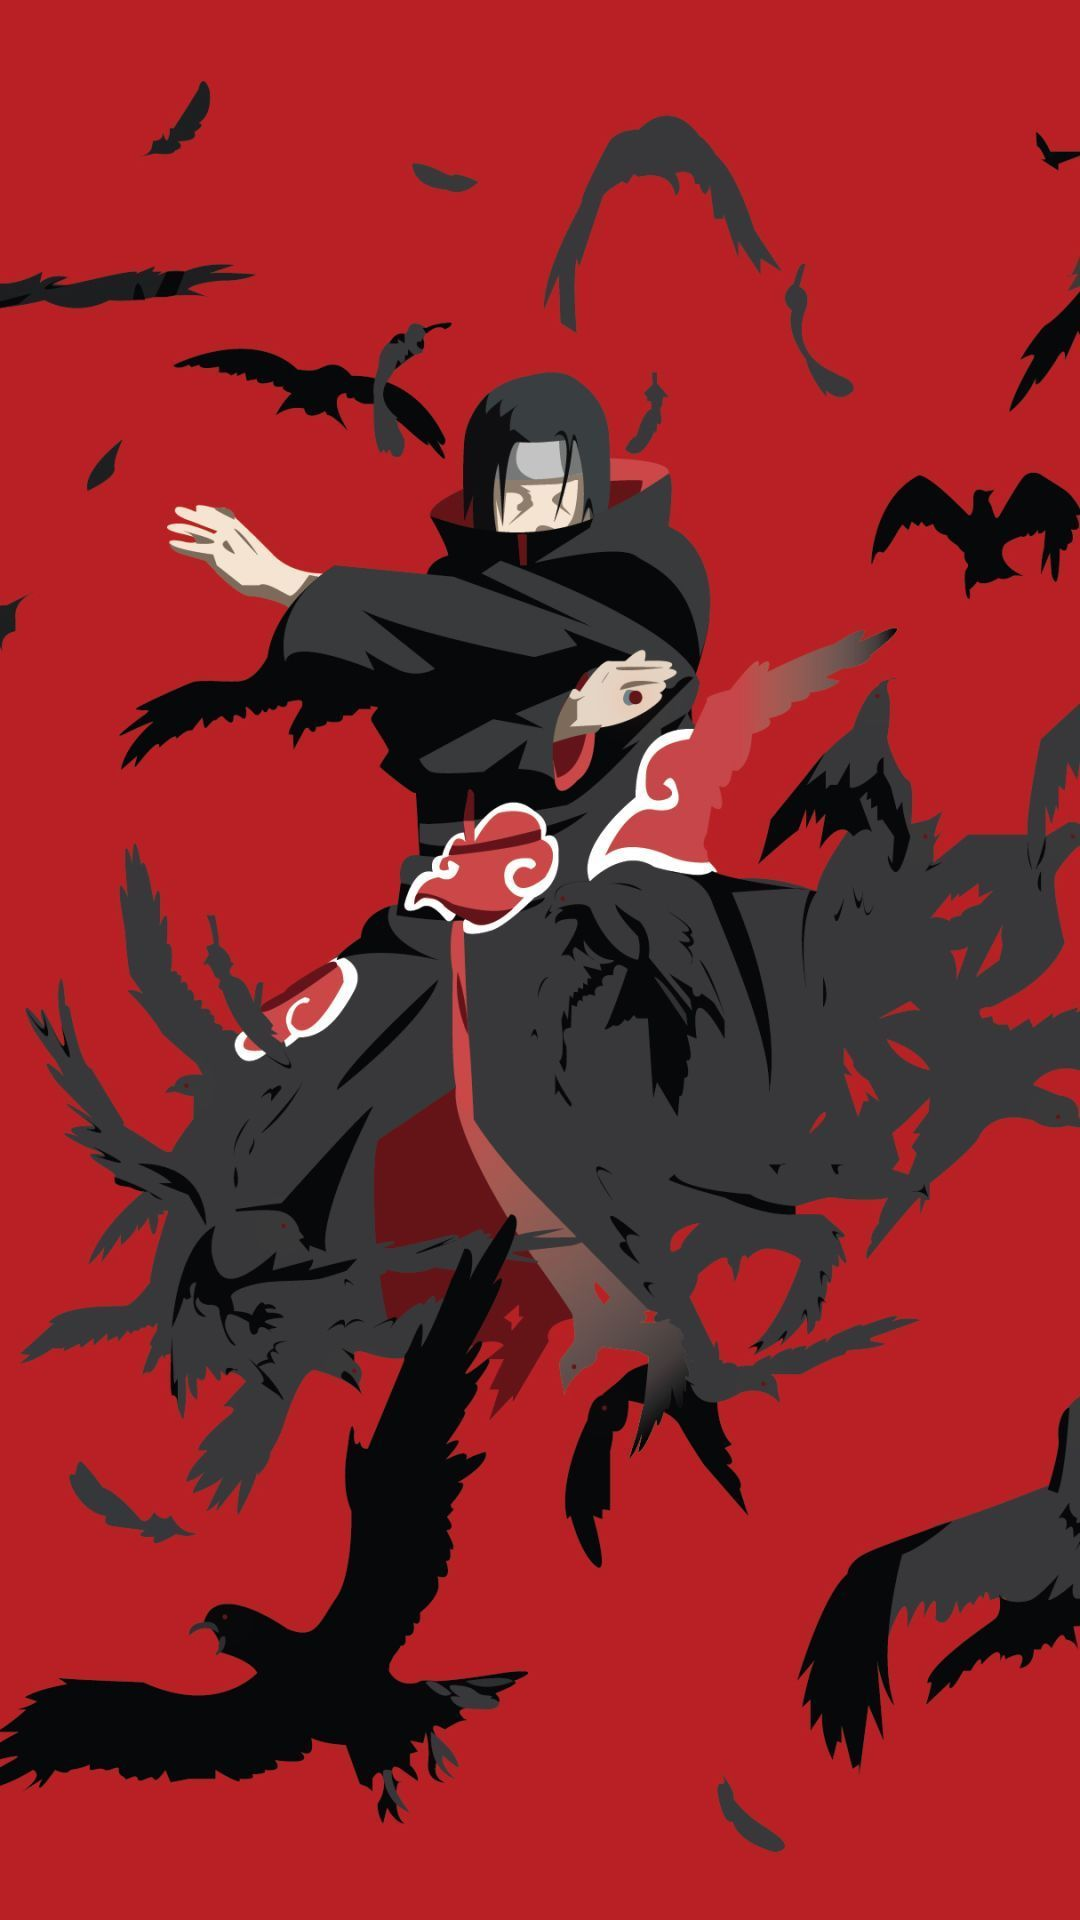 Itachi Background Hd Wallpaper » Hupages » Download Iphone